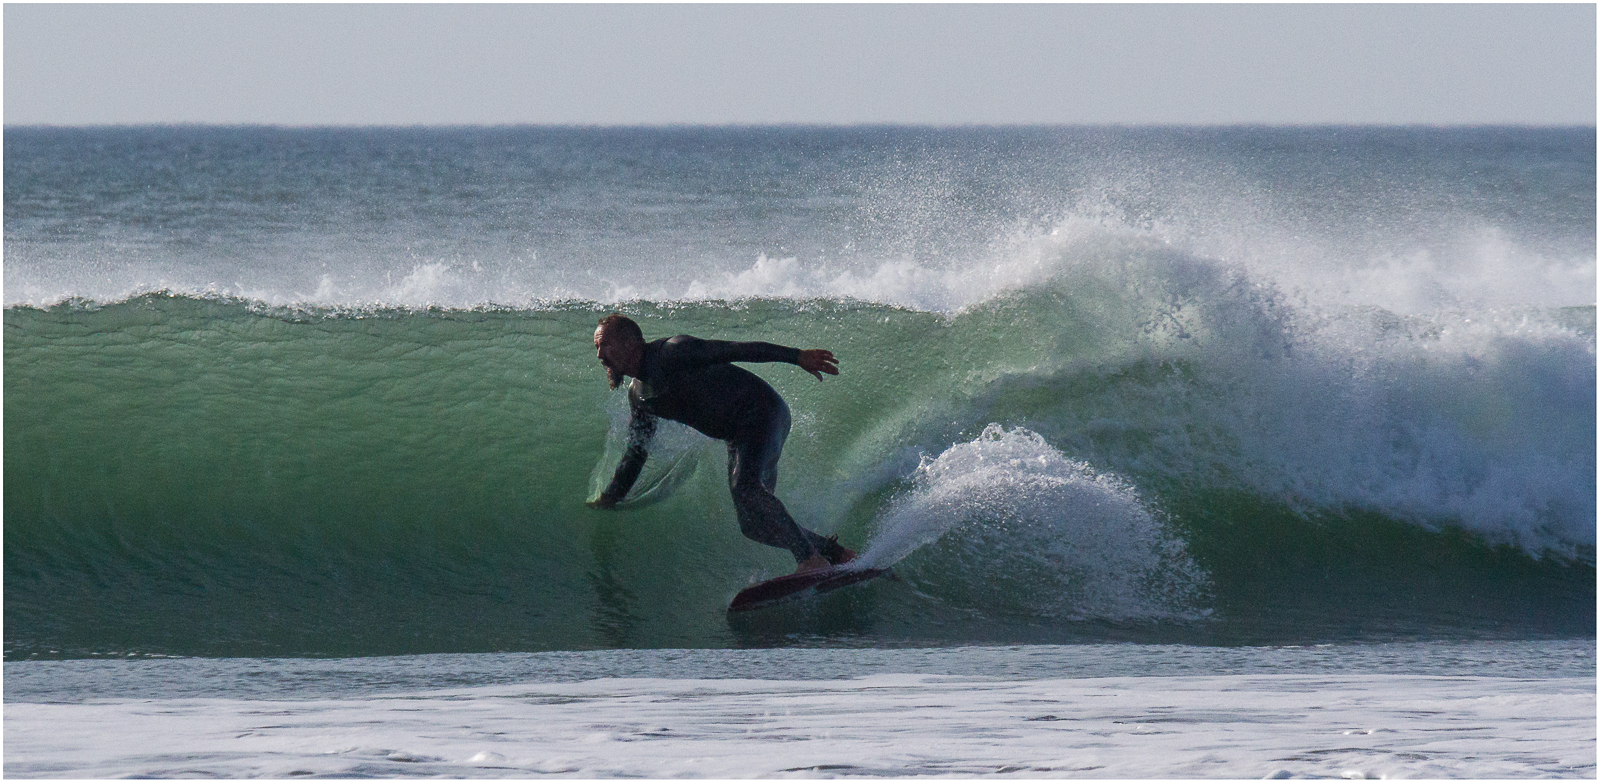 Surfer takes to the waves at Widemouth Bay near Bude in north Cornwall - one of the top 10 things to do in and around Bude